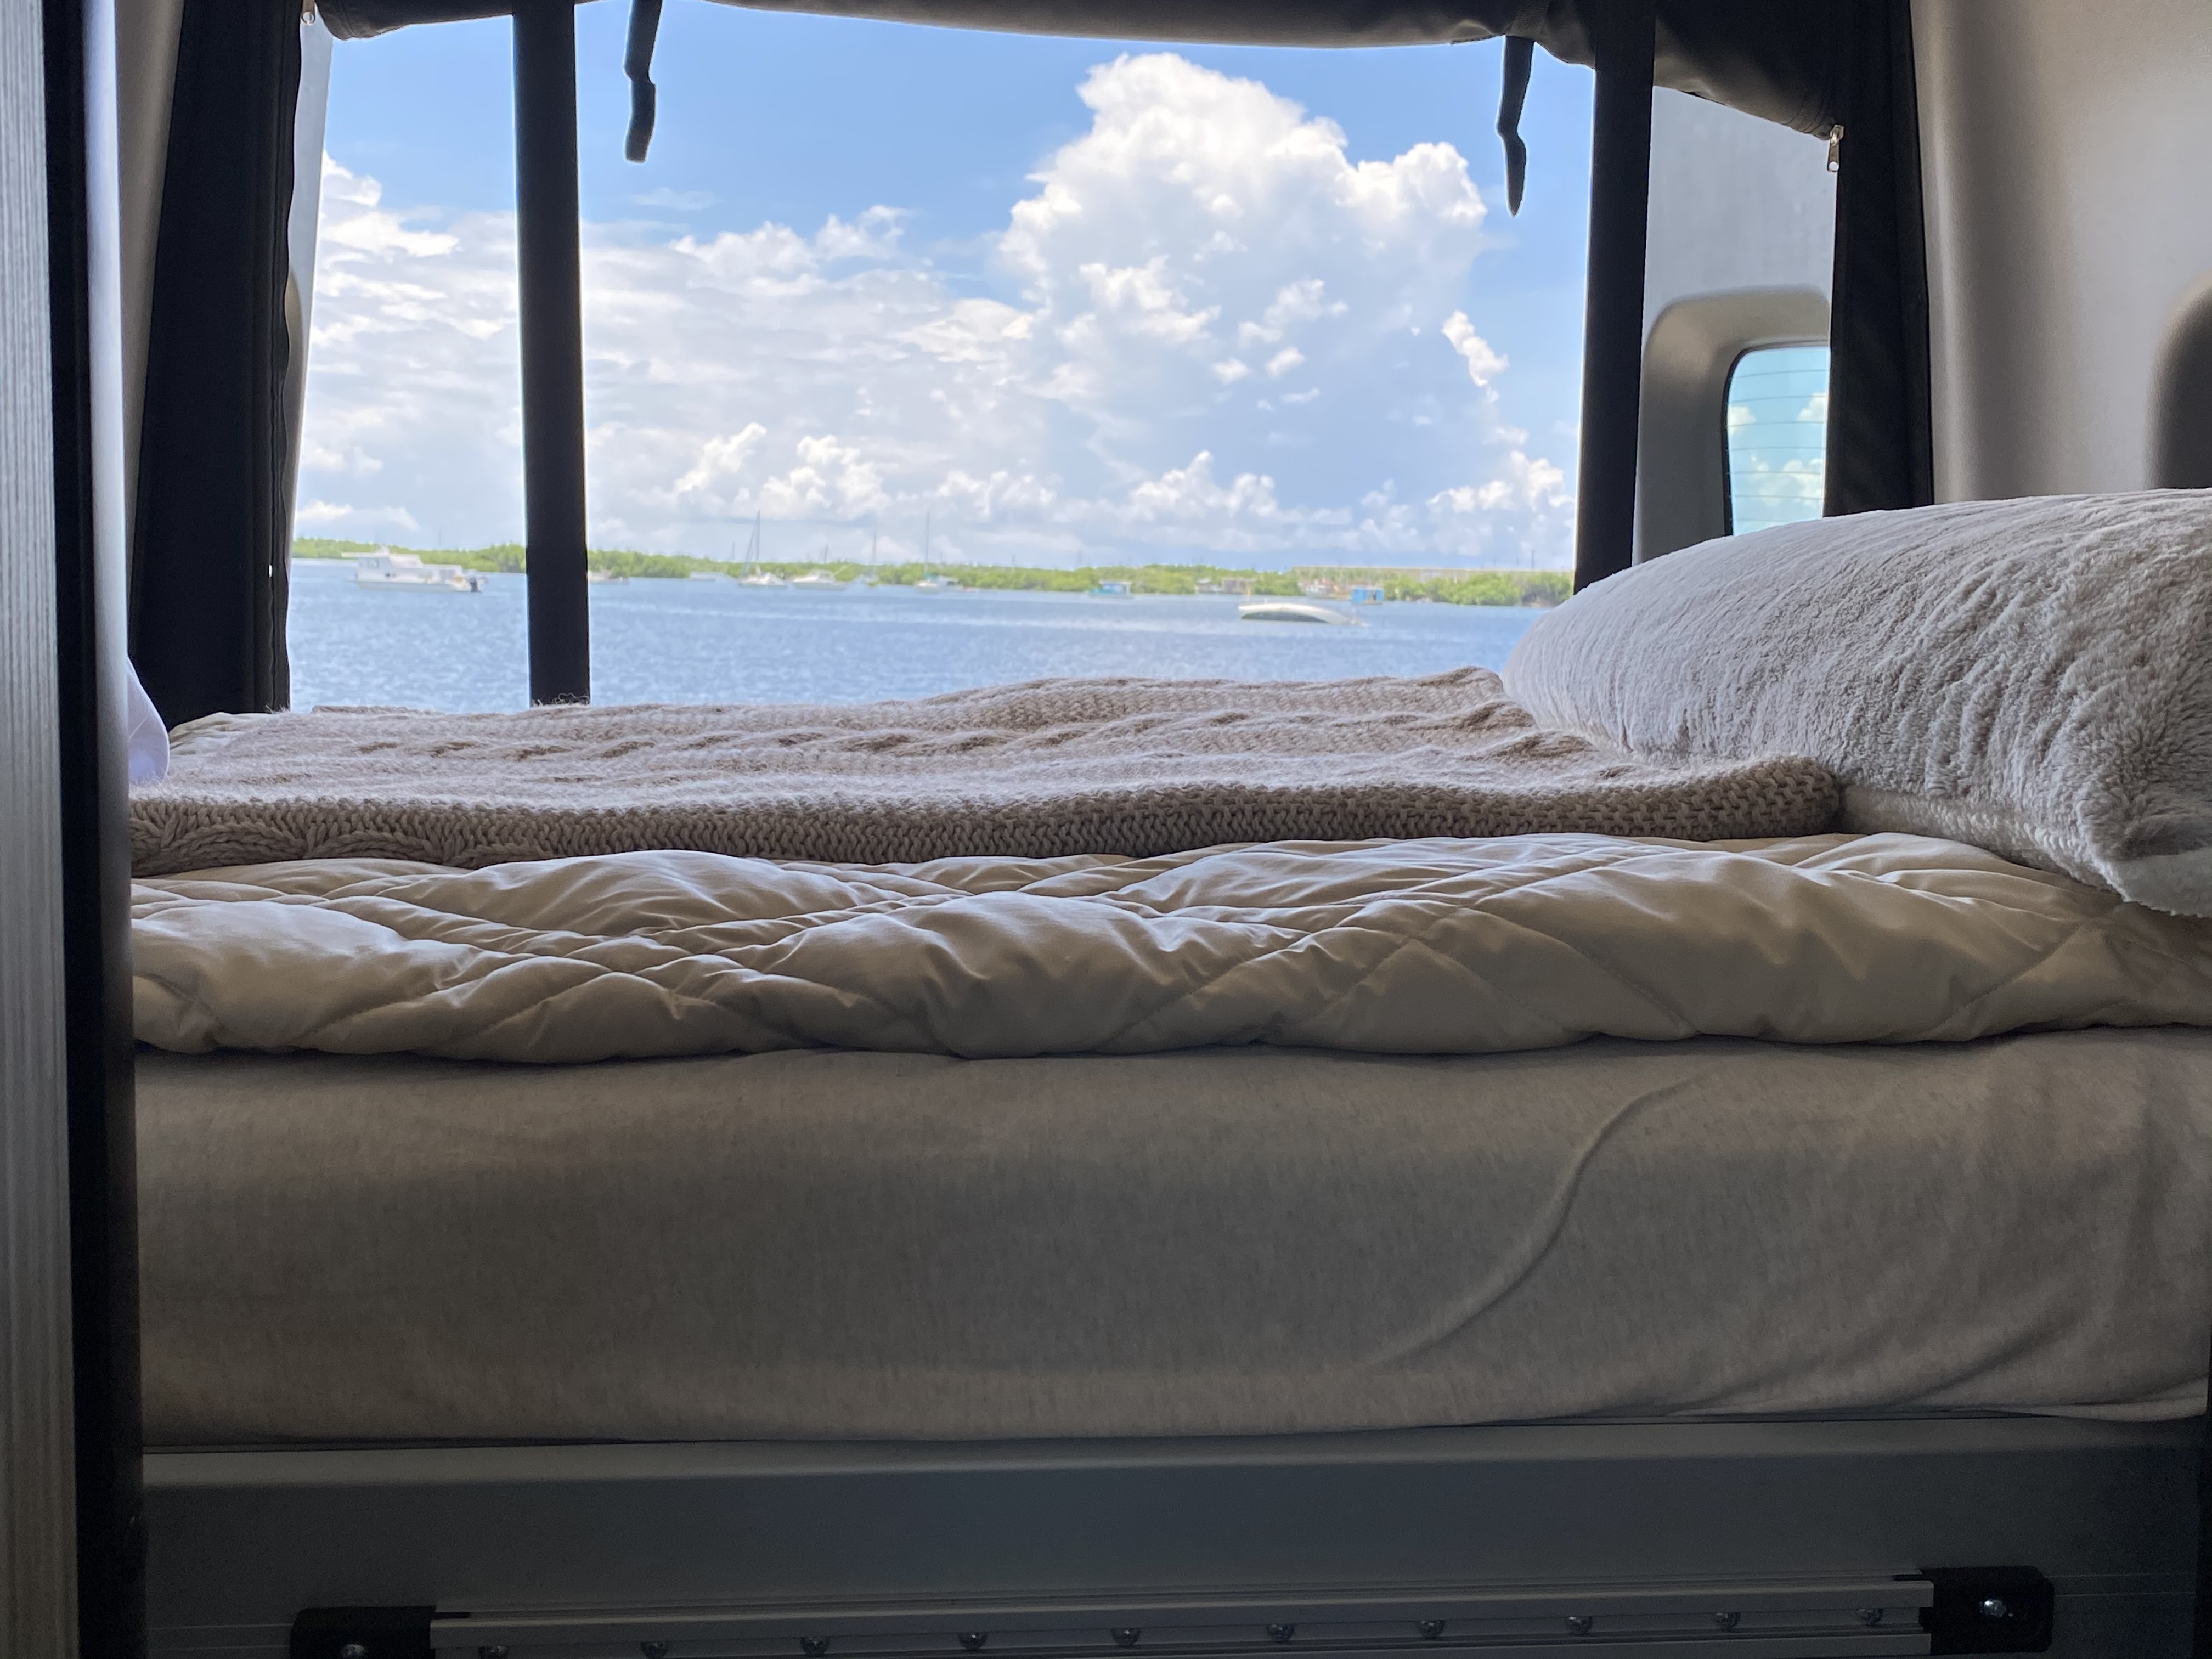 Bed Lowered to 3/4 position. Winnebago Revel 4x4 2020